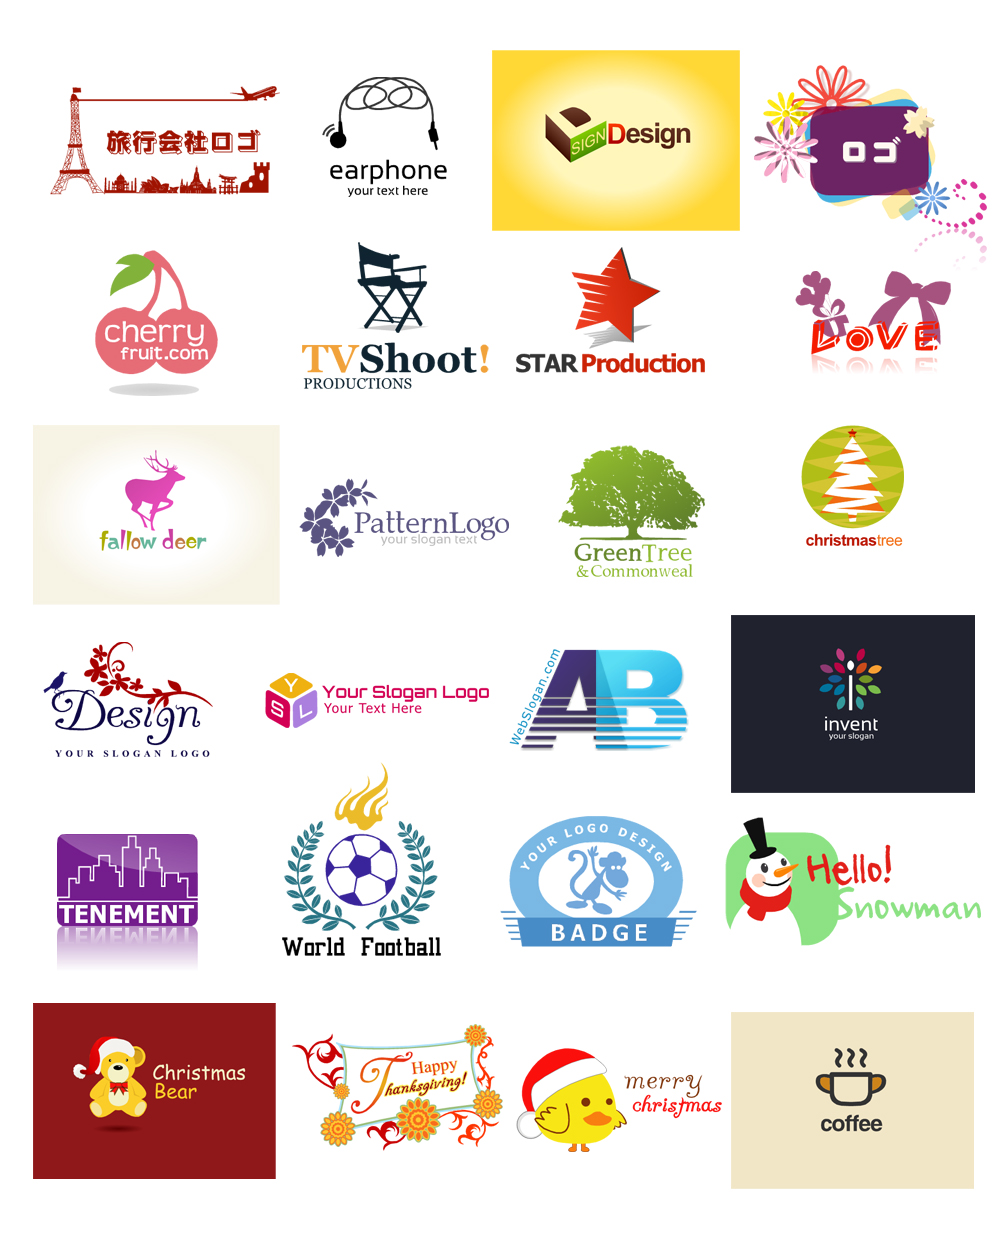 Free Online Logo Maker Design Custom Logos in Canva